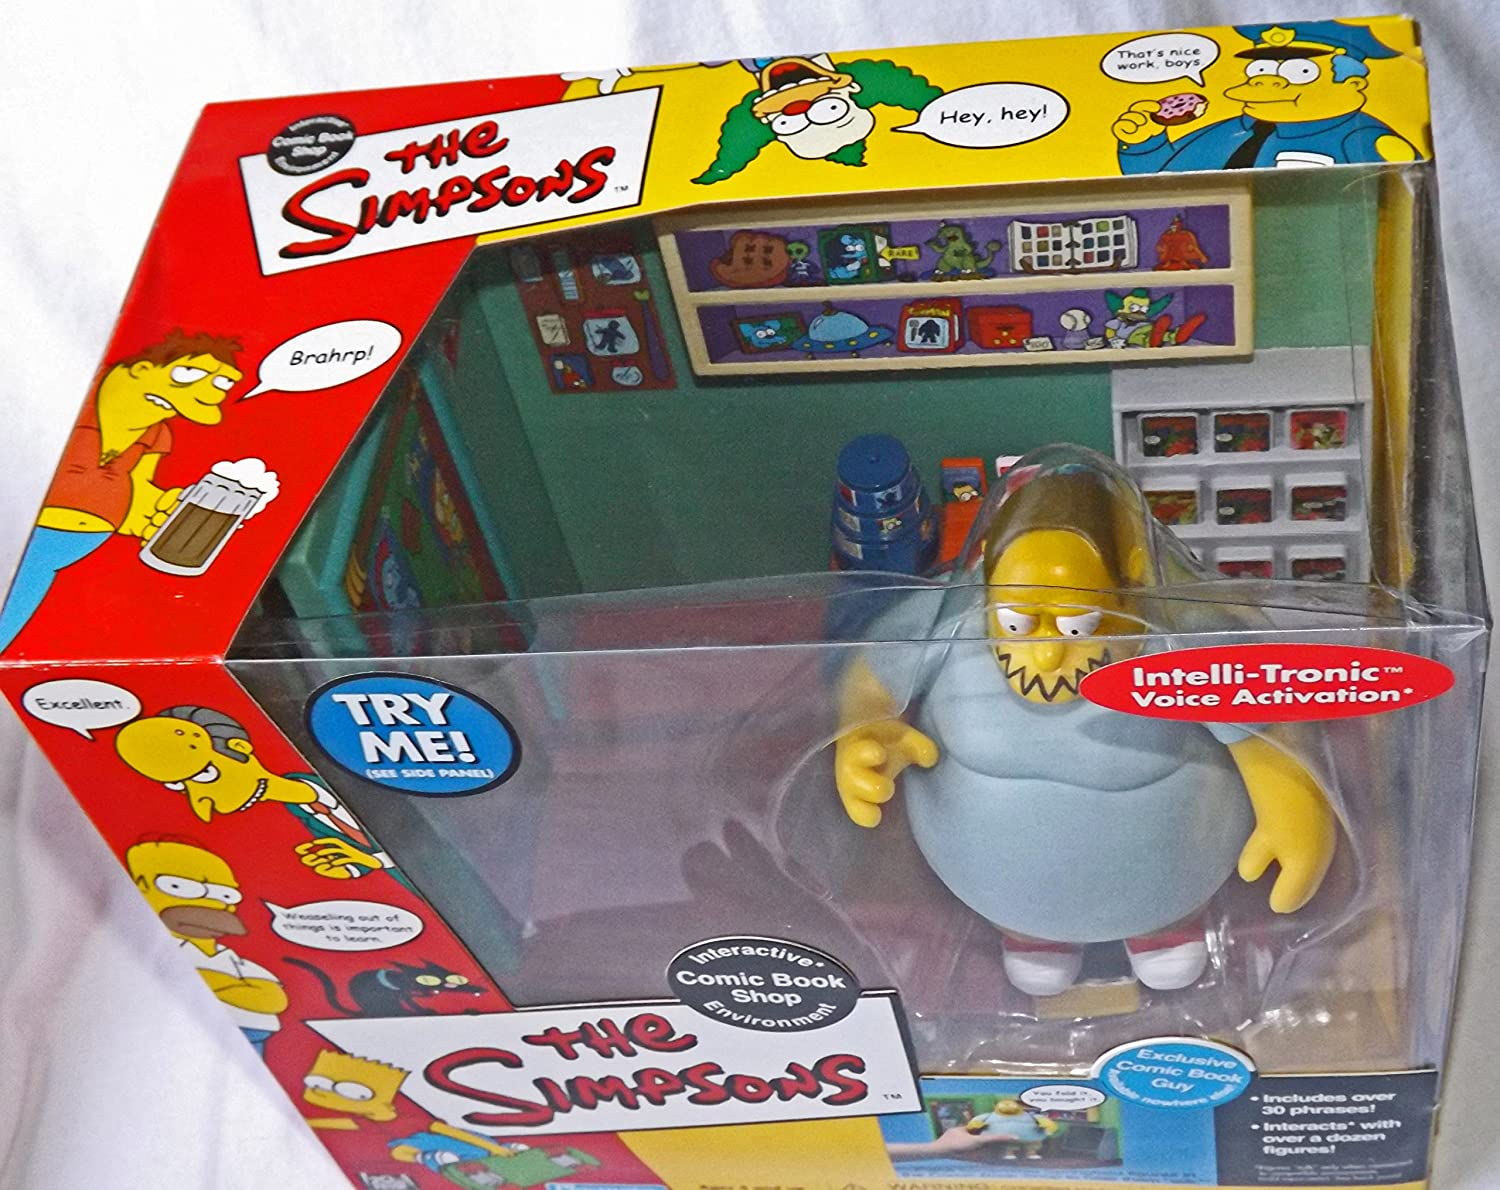 The Simpsons World of Springfield Comic Book Shop